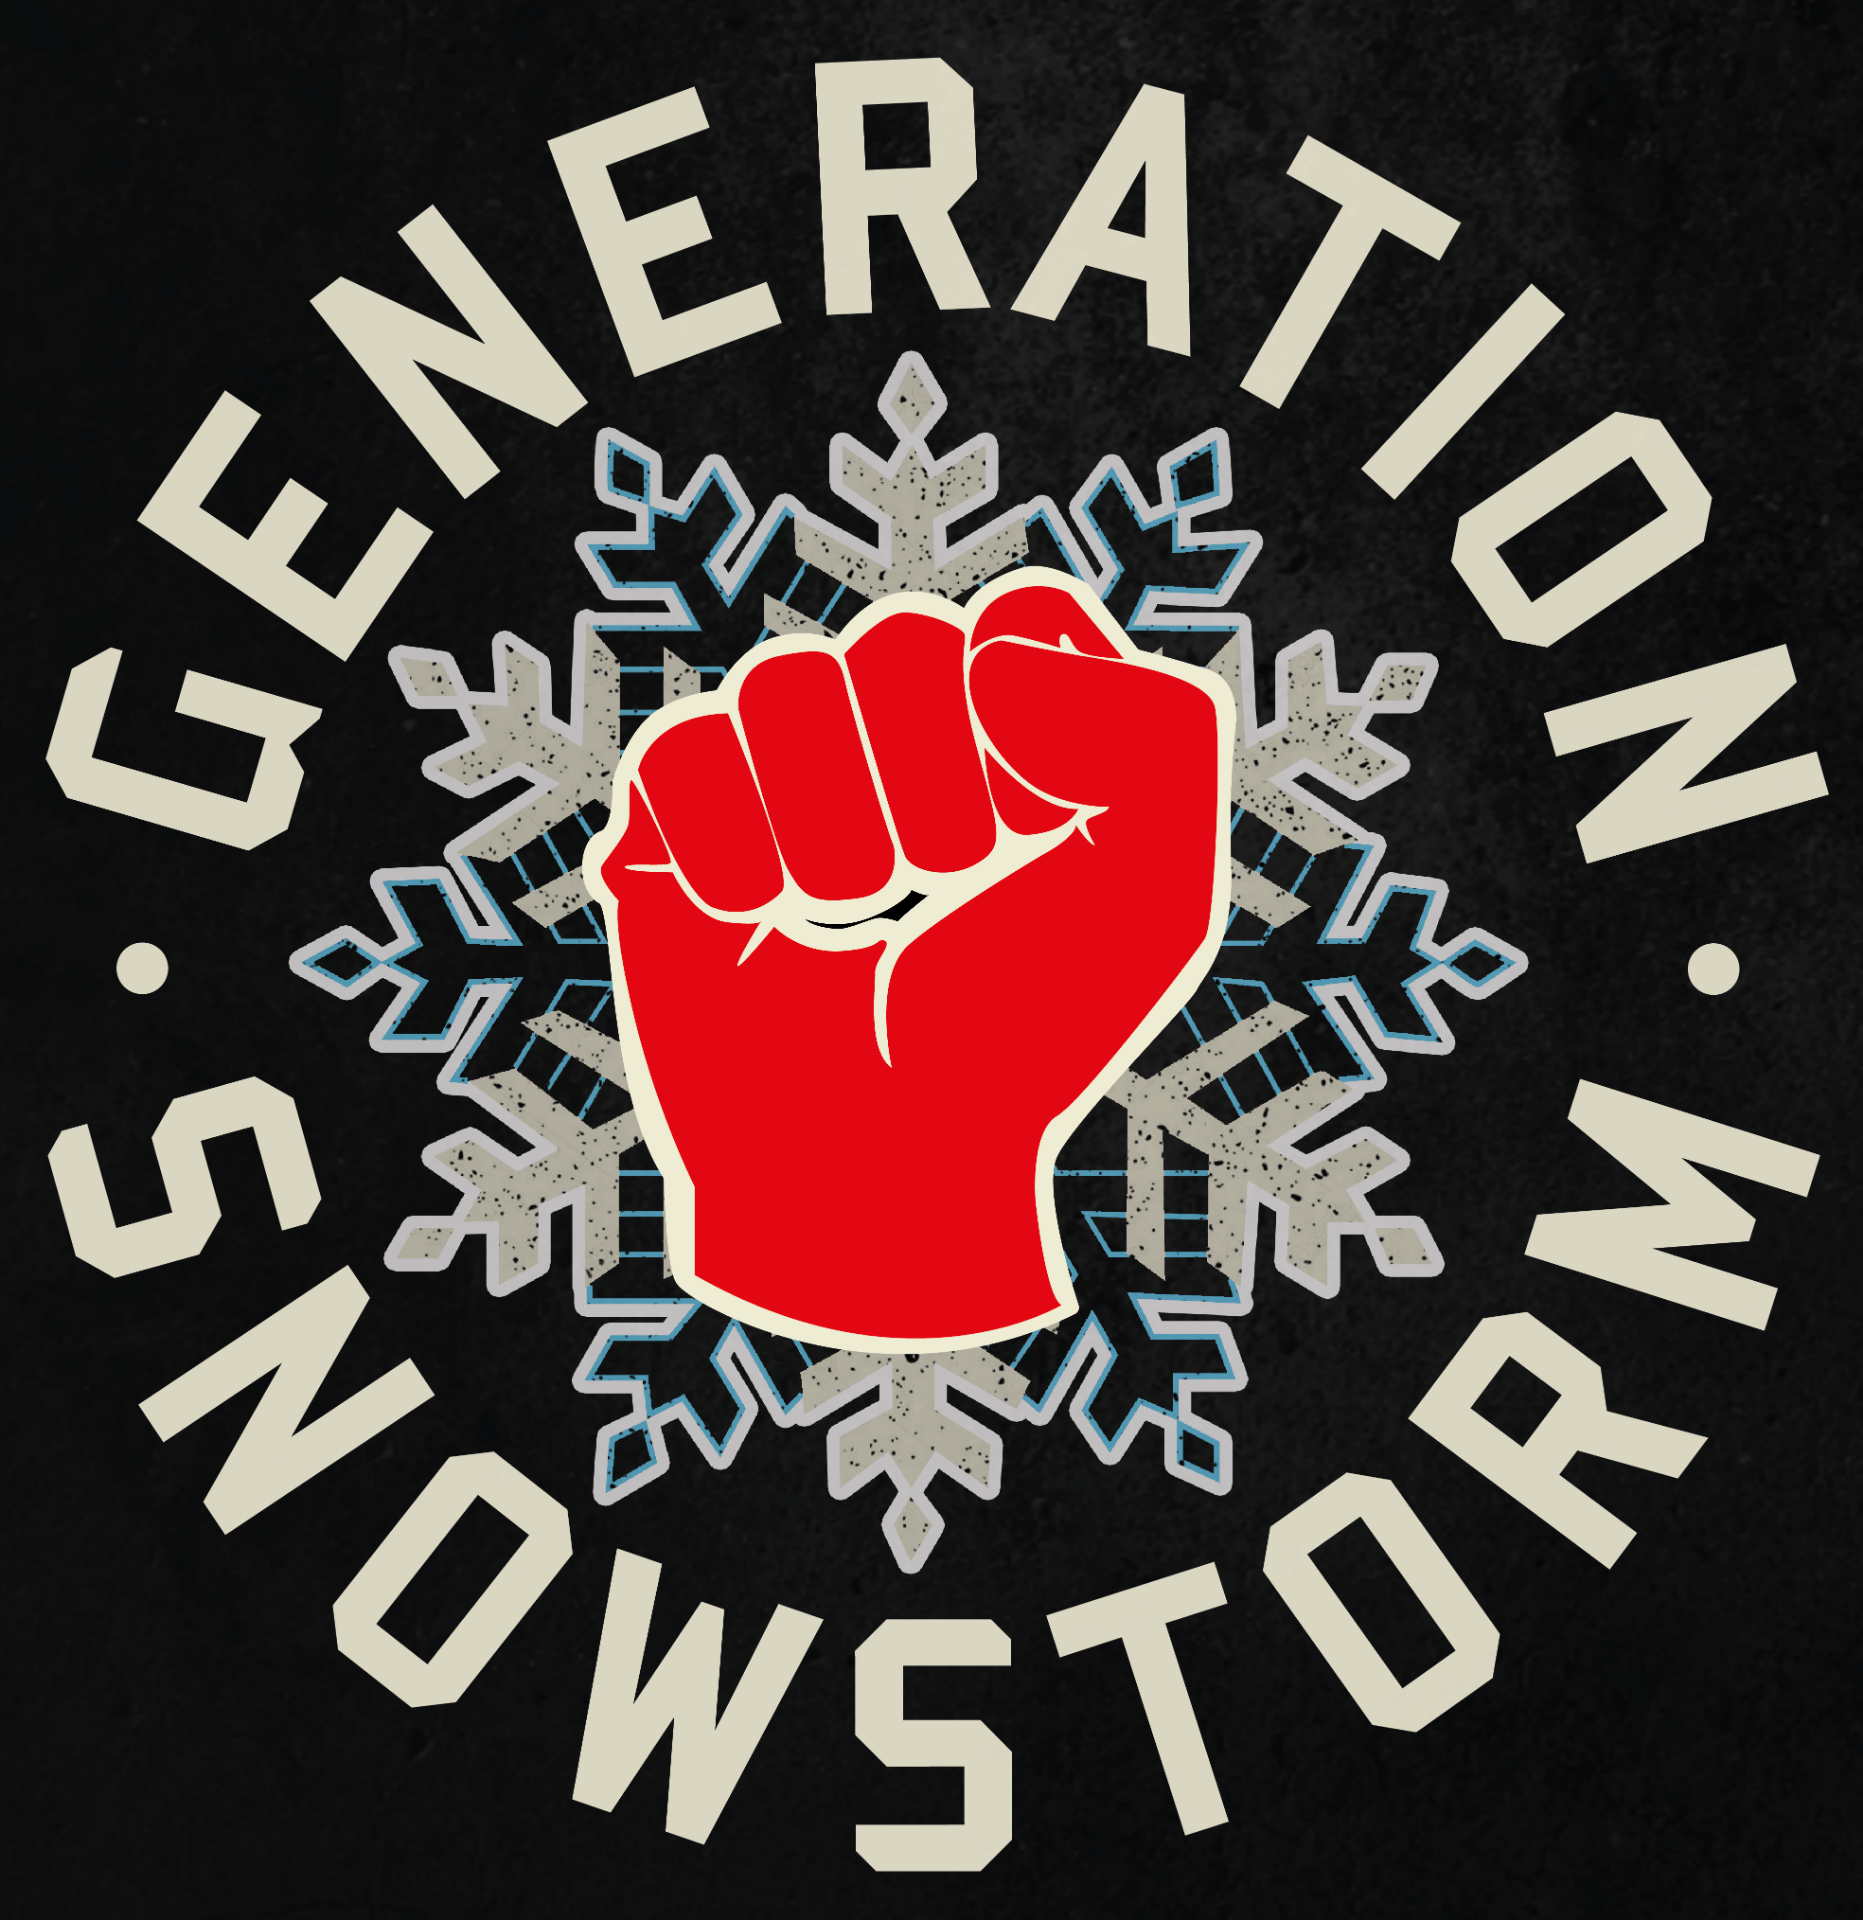 Red fist superimposed on top of a snowflake